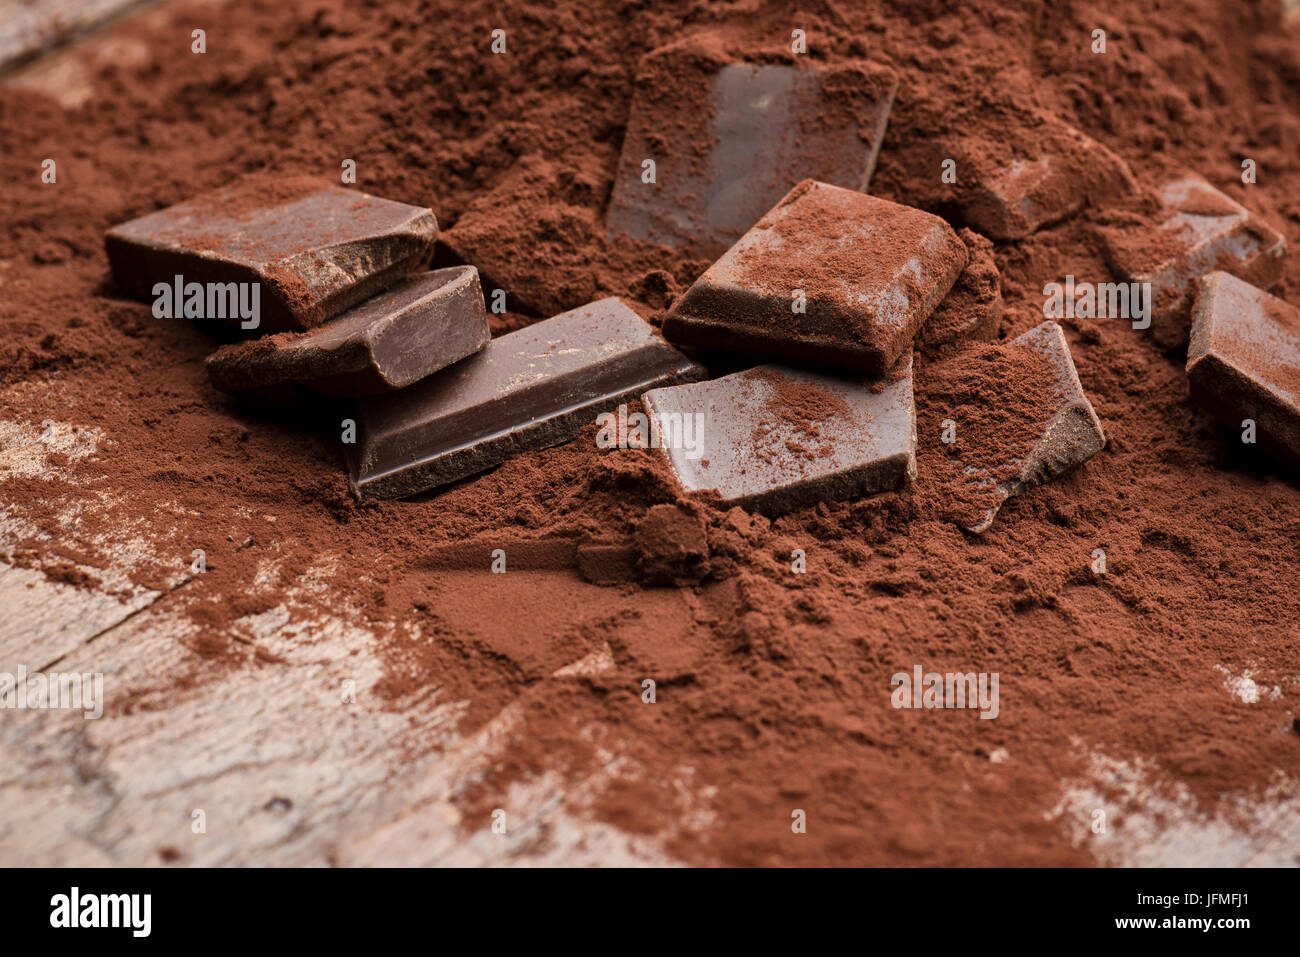 heap of cocoa powder with chocolate block on wooden table - Stock Image